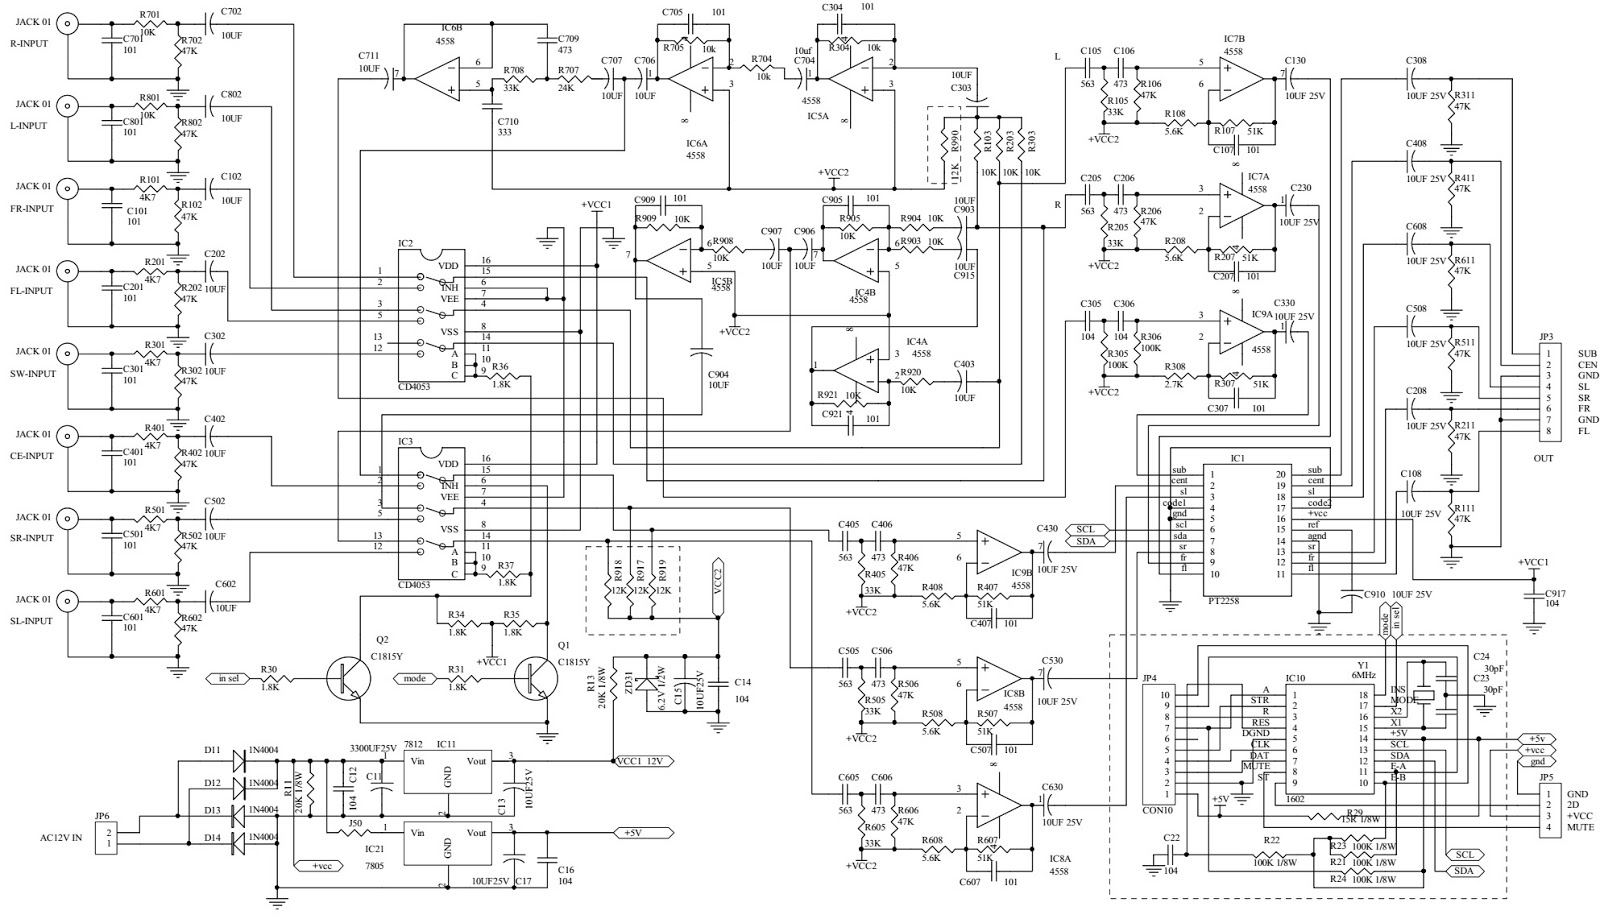 5 1 Channel Home Theater Circuit Diagram Allen Bradley Typical Wiring Diagrams Electro Help Microlab X5 Multimedia Speaker